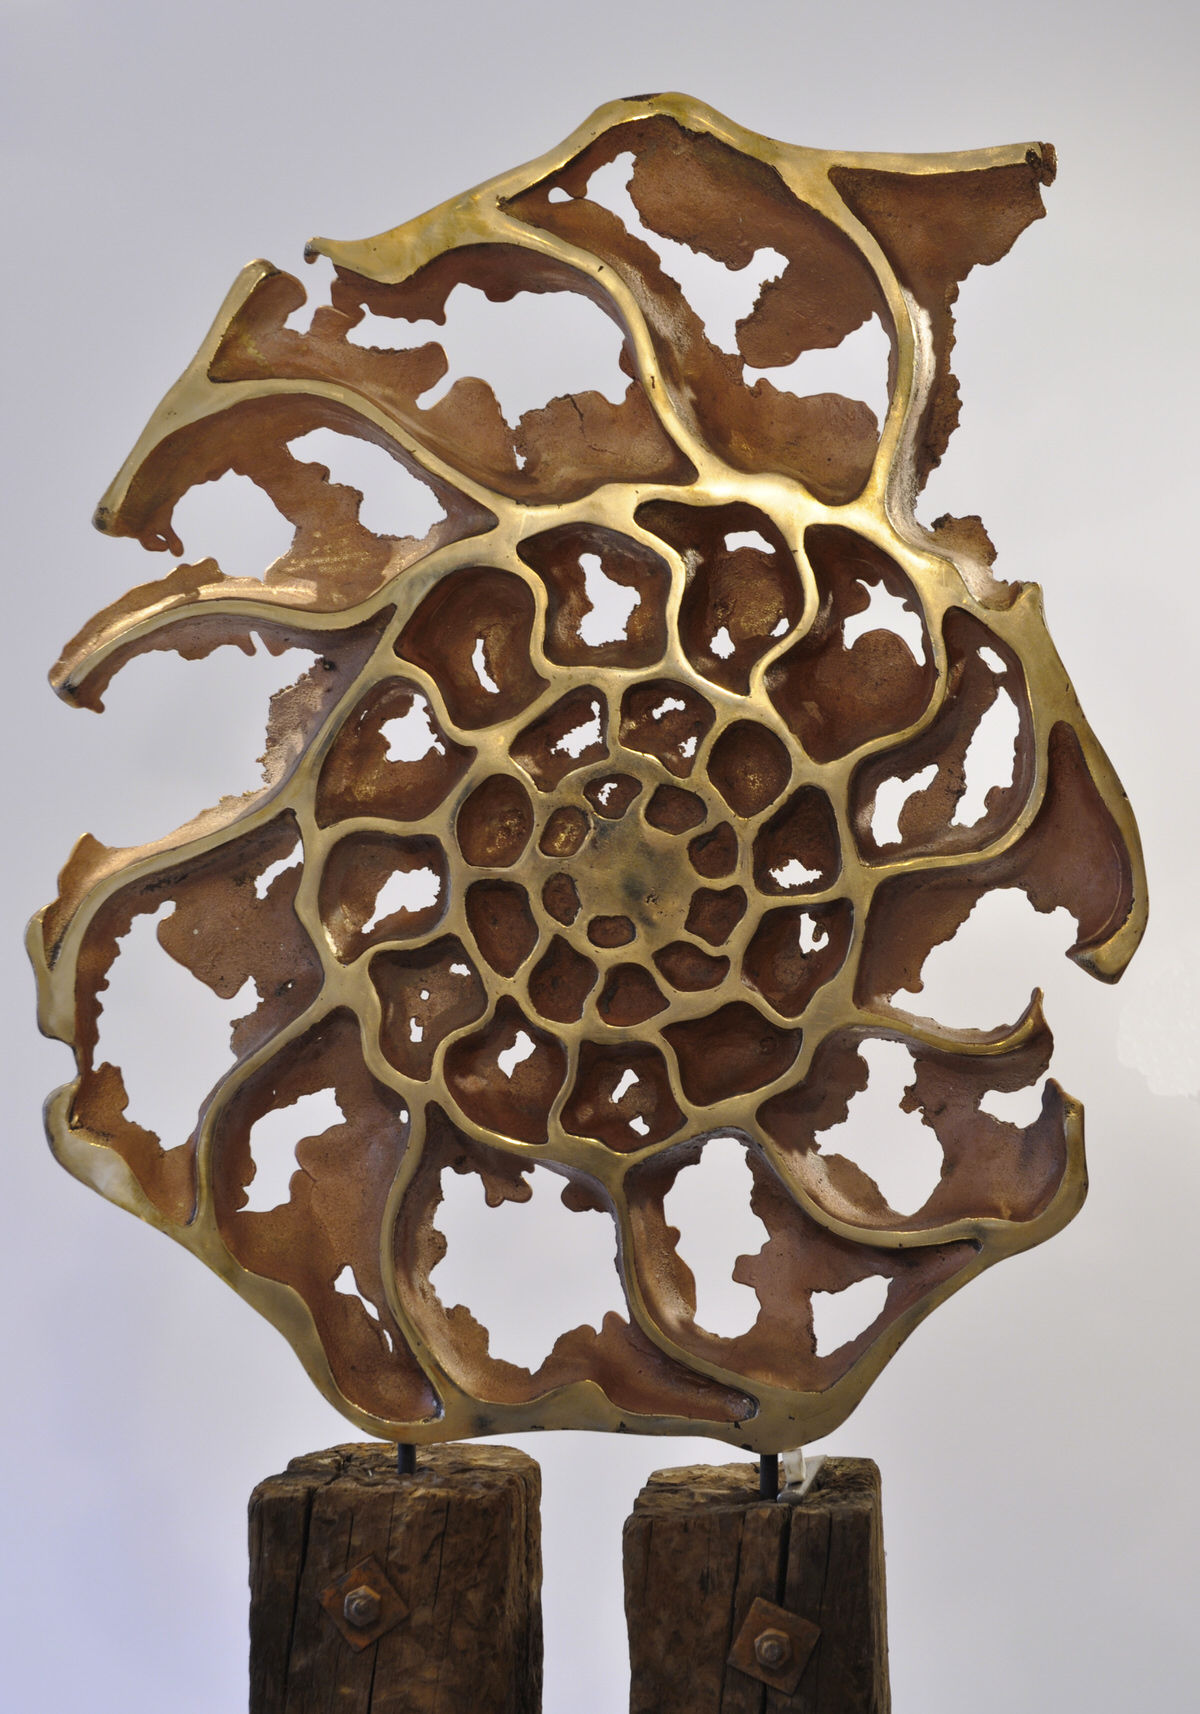 Ammonite slice front bronze, garden sculpture inspired by geology fossil Christie's Auction House London by Mark Reed